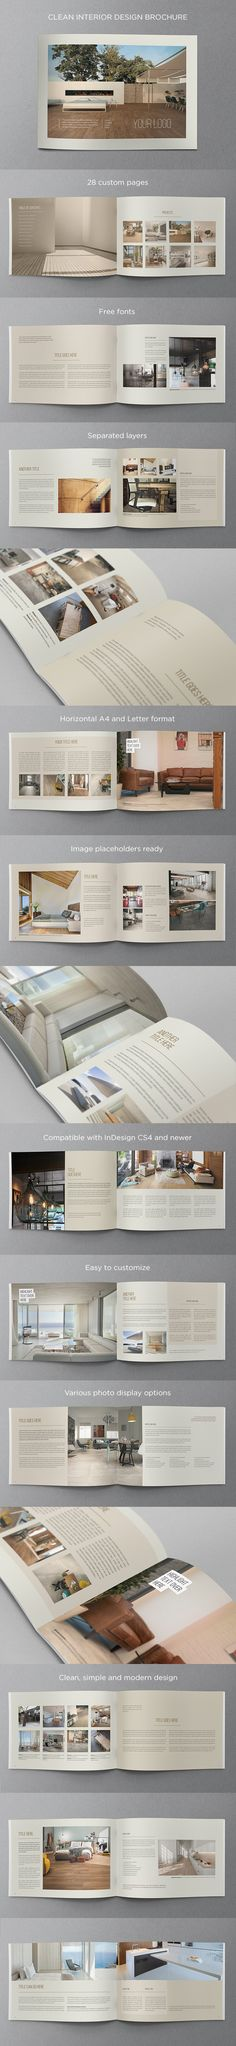 This brochure is a combination of great imagery and simple text. I don't think it's amazing, but it's a decent concept.